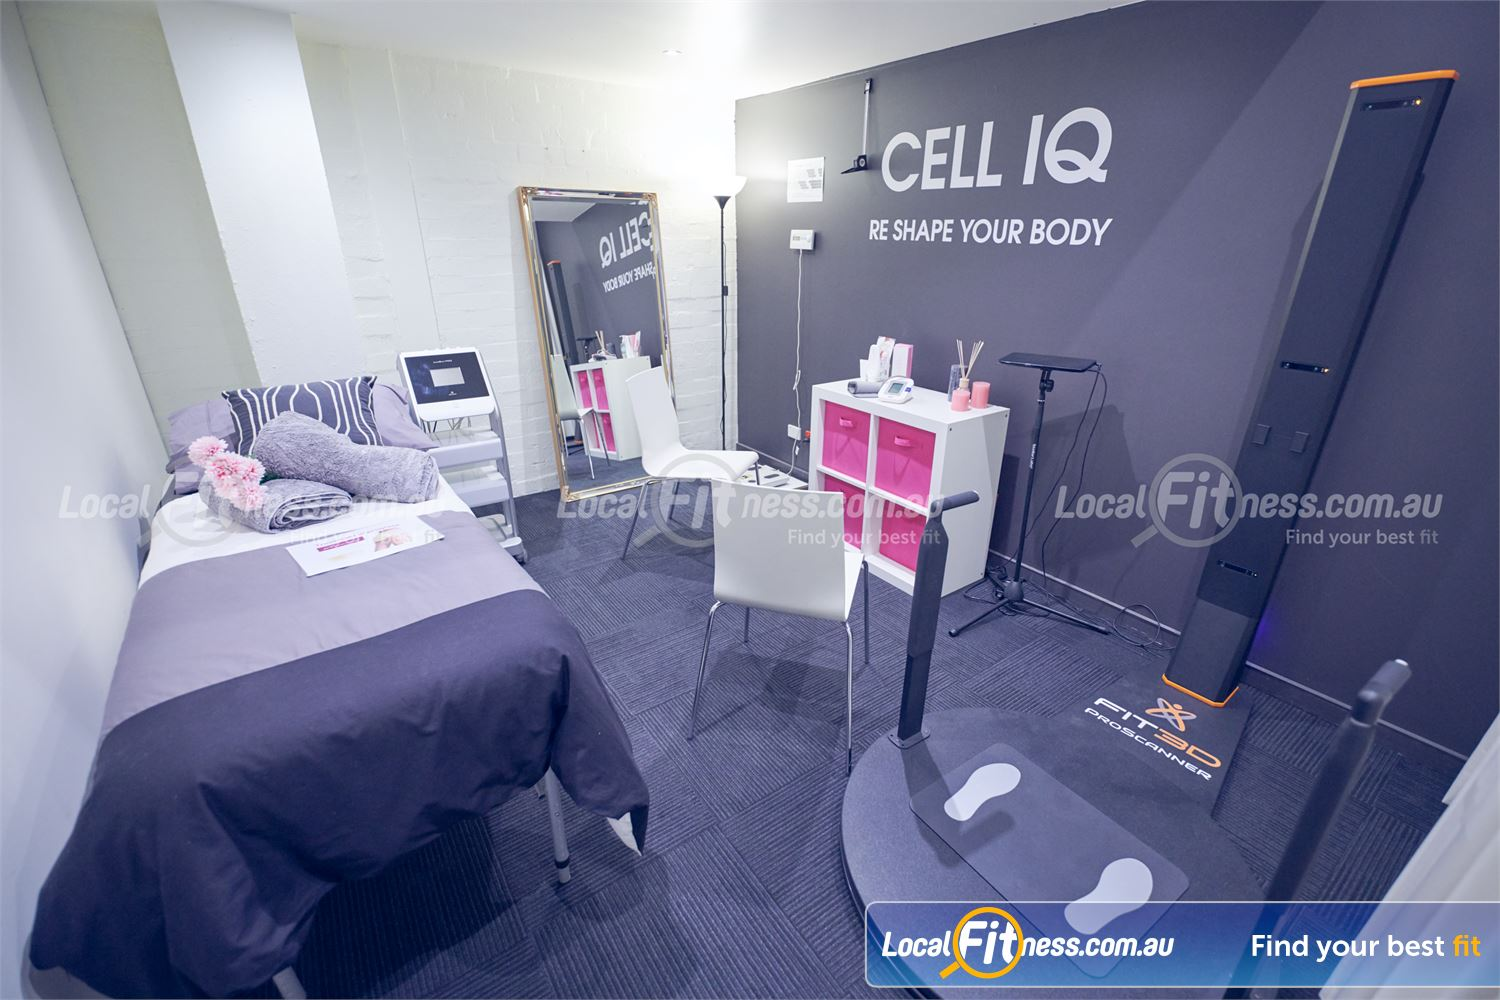 Fernwood Fitness Near Templestowe Lower Get rid of stubborn fat and cellulite with Cell IQ.